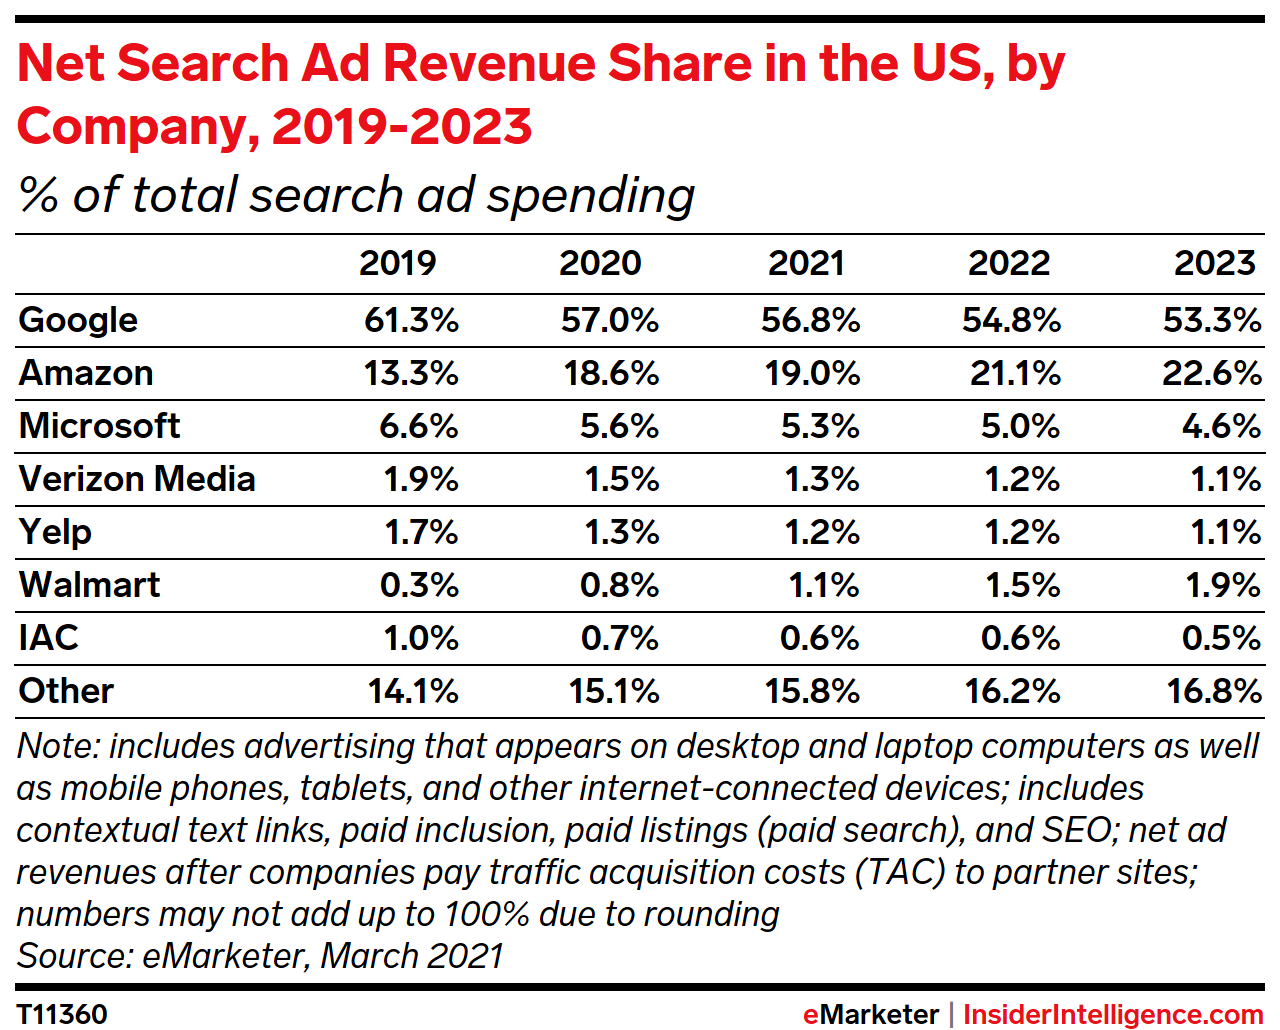 Net Search Ad Revenue Share in the US, by Company, 2019-2023 (% of total)